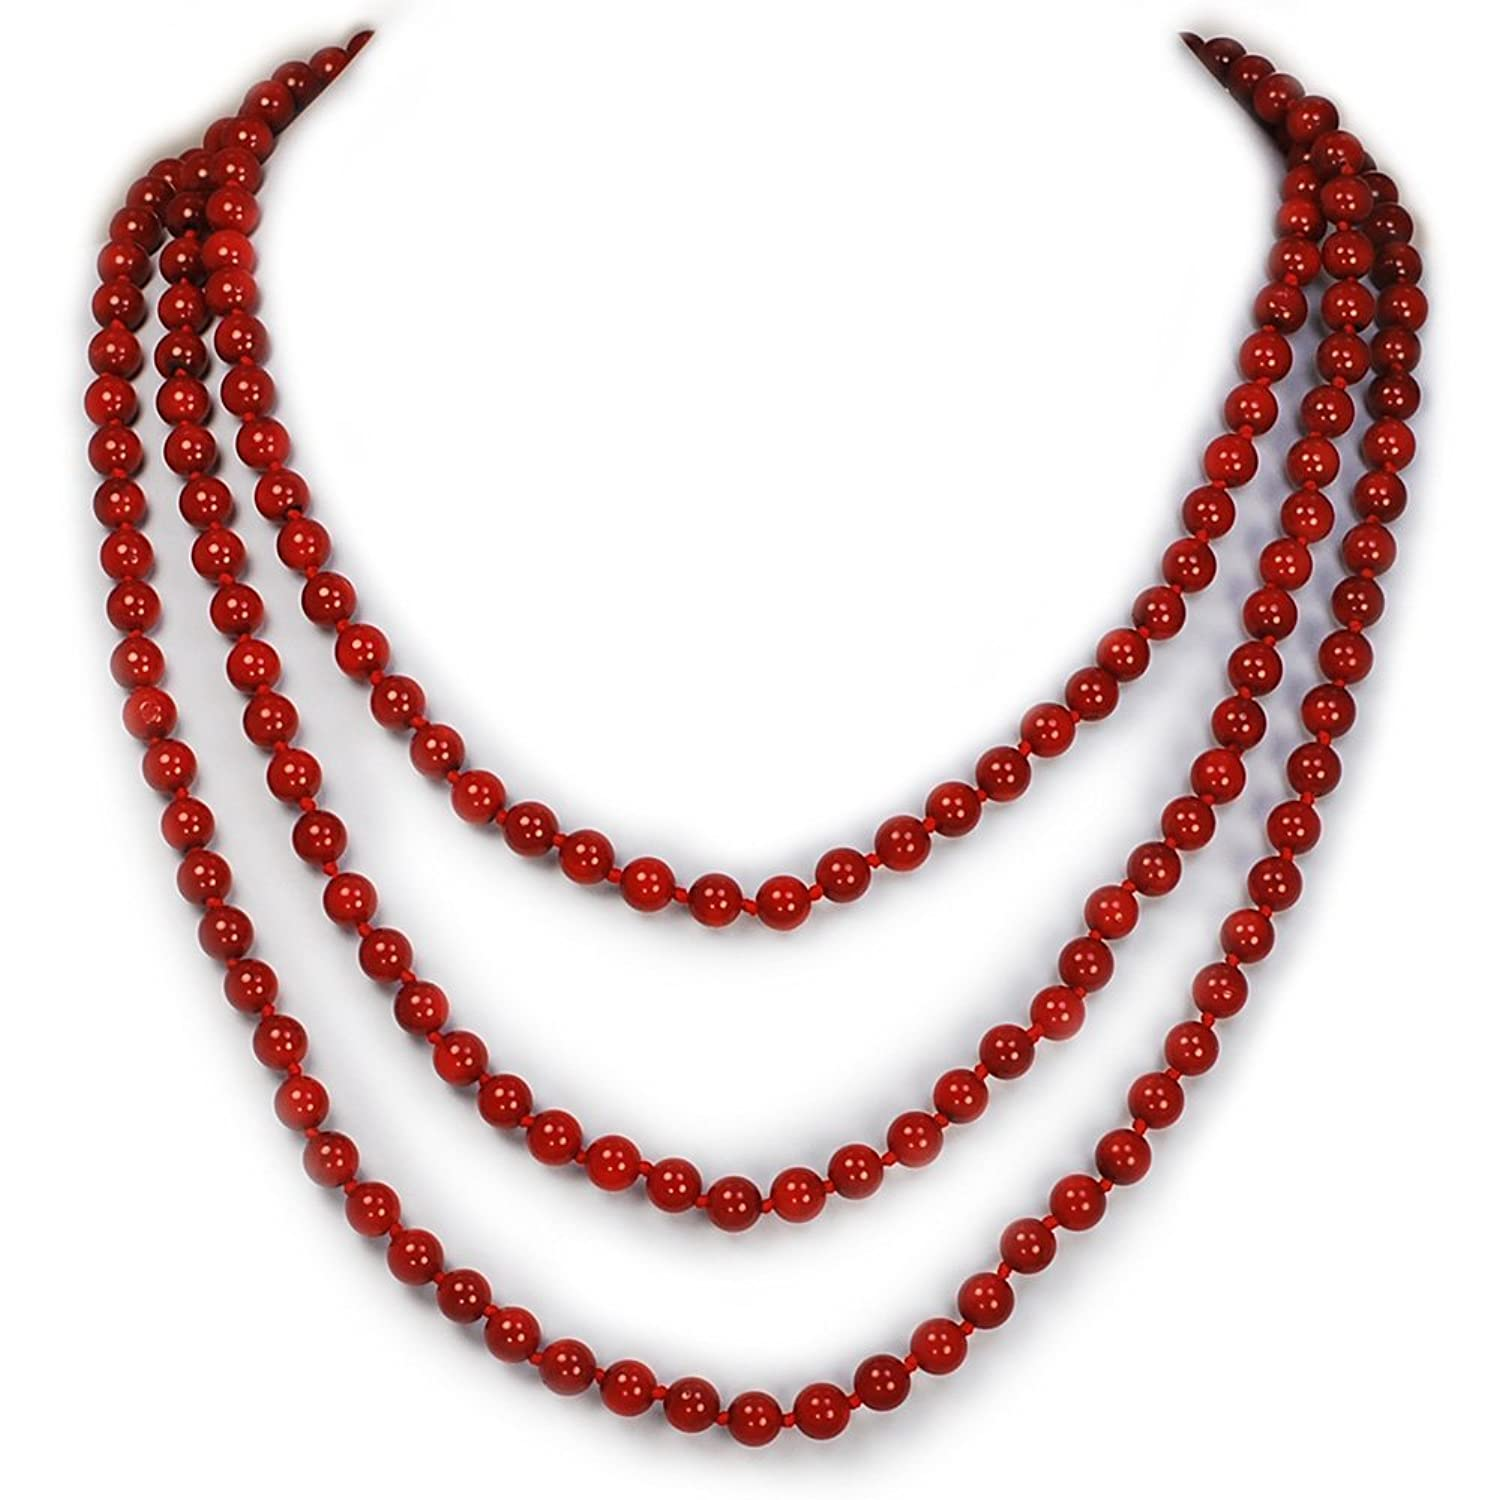 "002 Ny6design Elegant and classy Jewelry Red Coral Hand-Knotted Strand Long Necklace 60"" N16040505c"